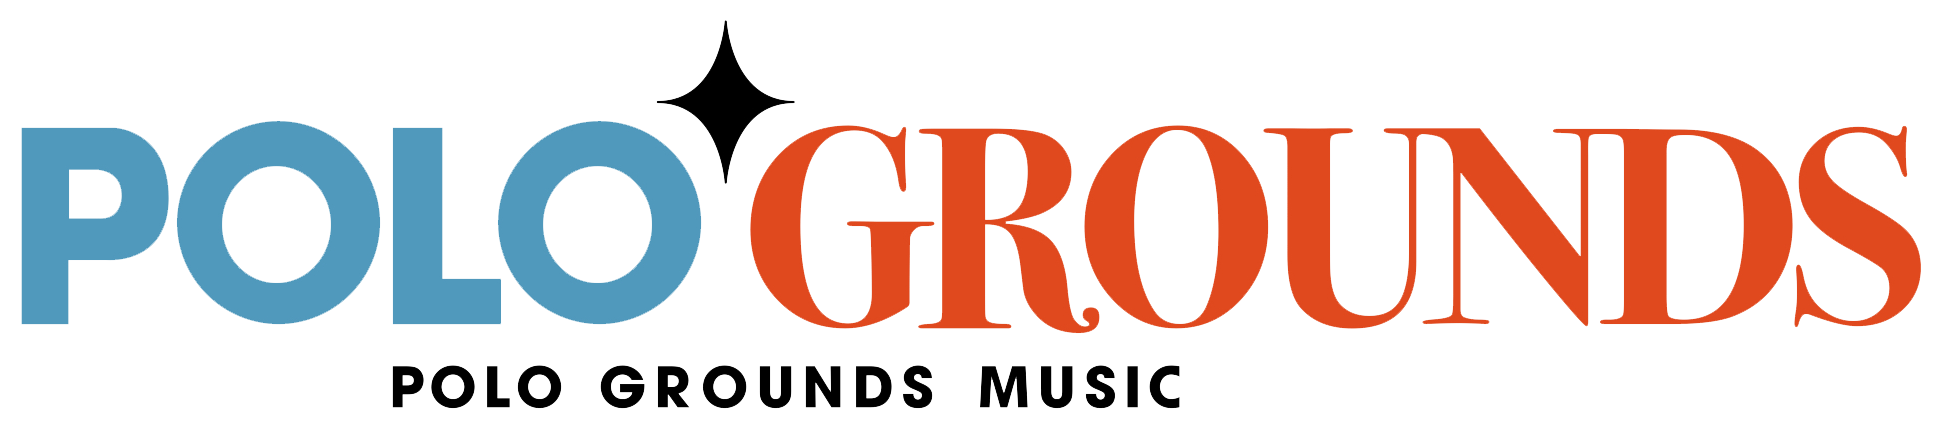 Polo Grounds Music Logo